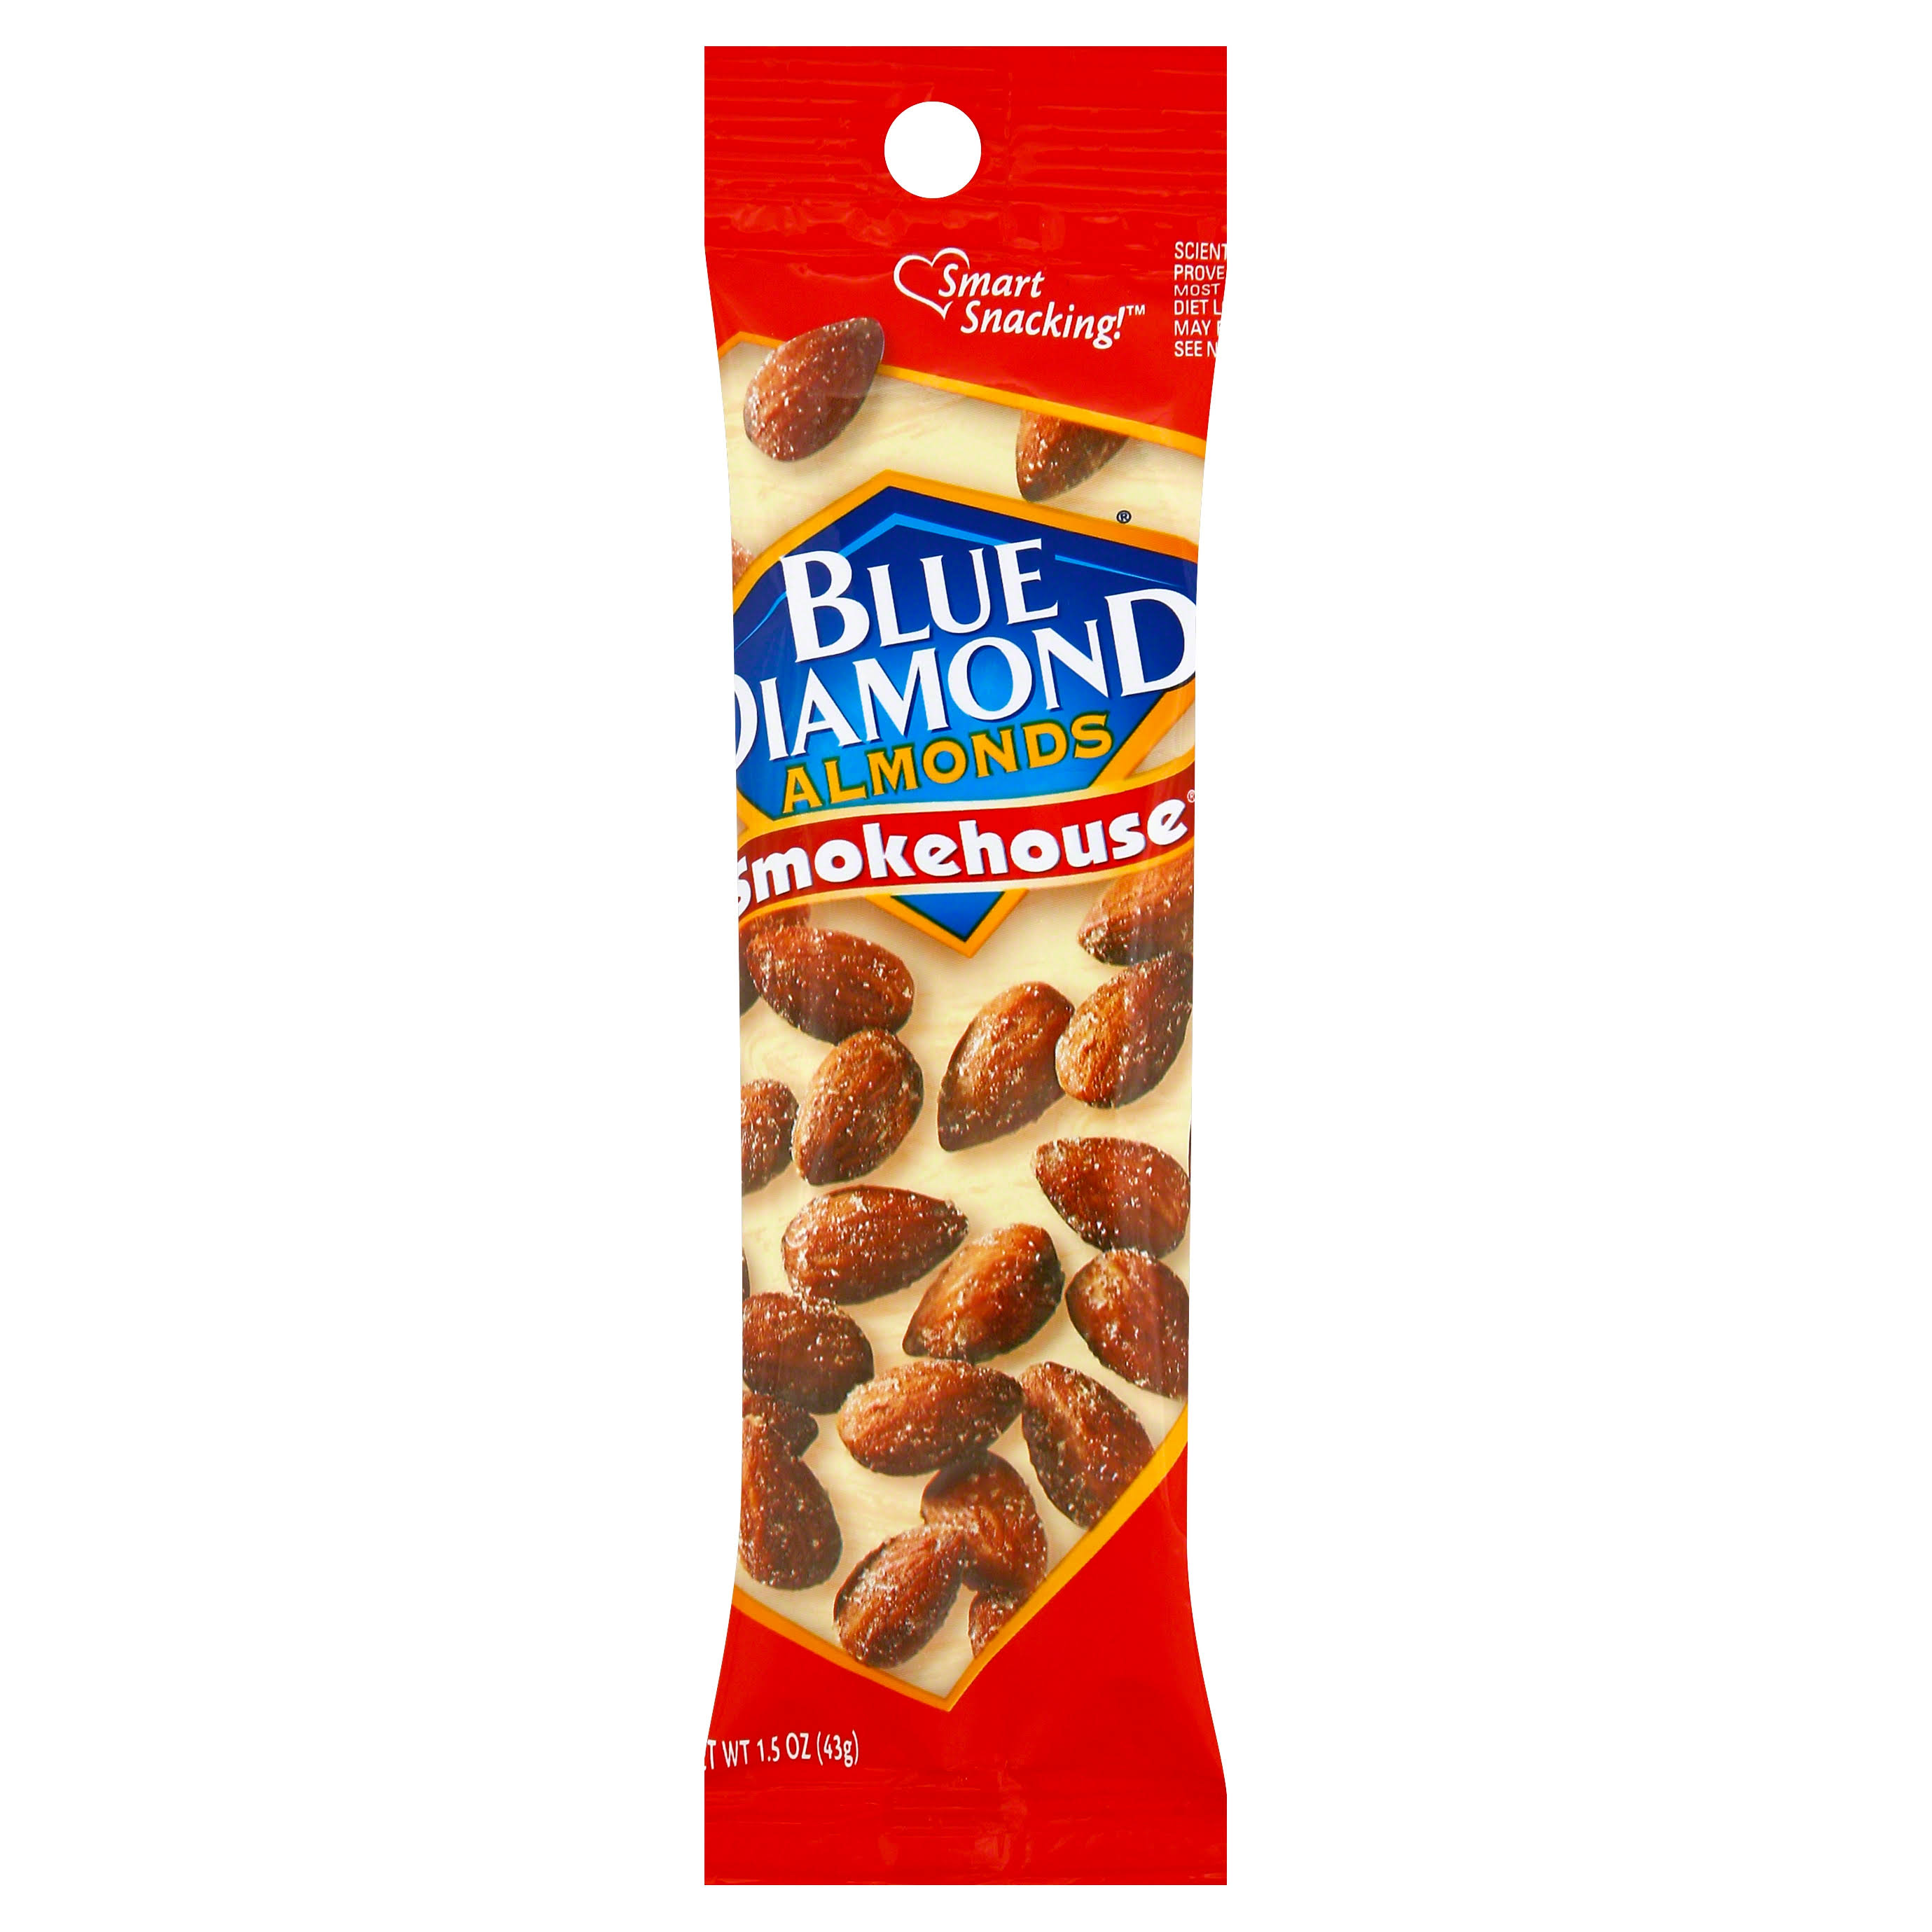 Blue Diamond Almonds - Smokehouse, 1.5oz